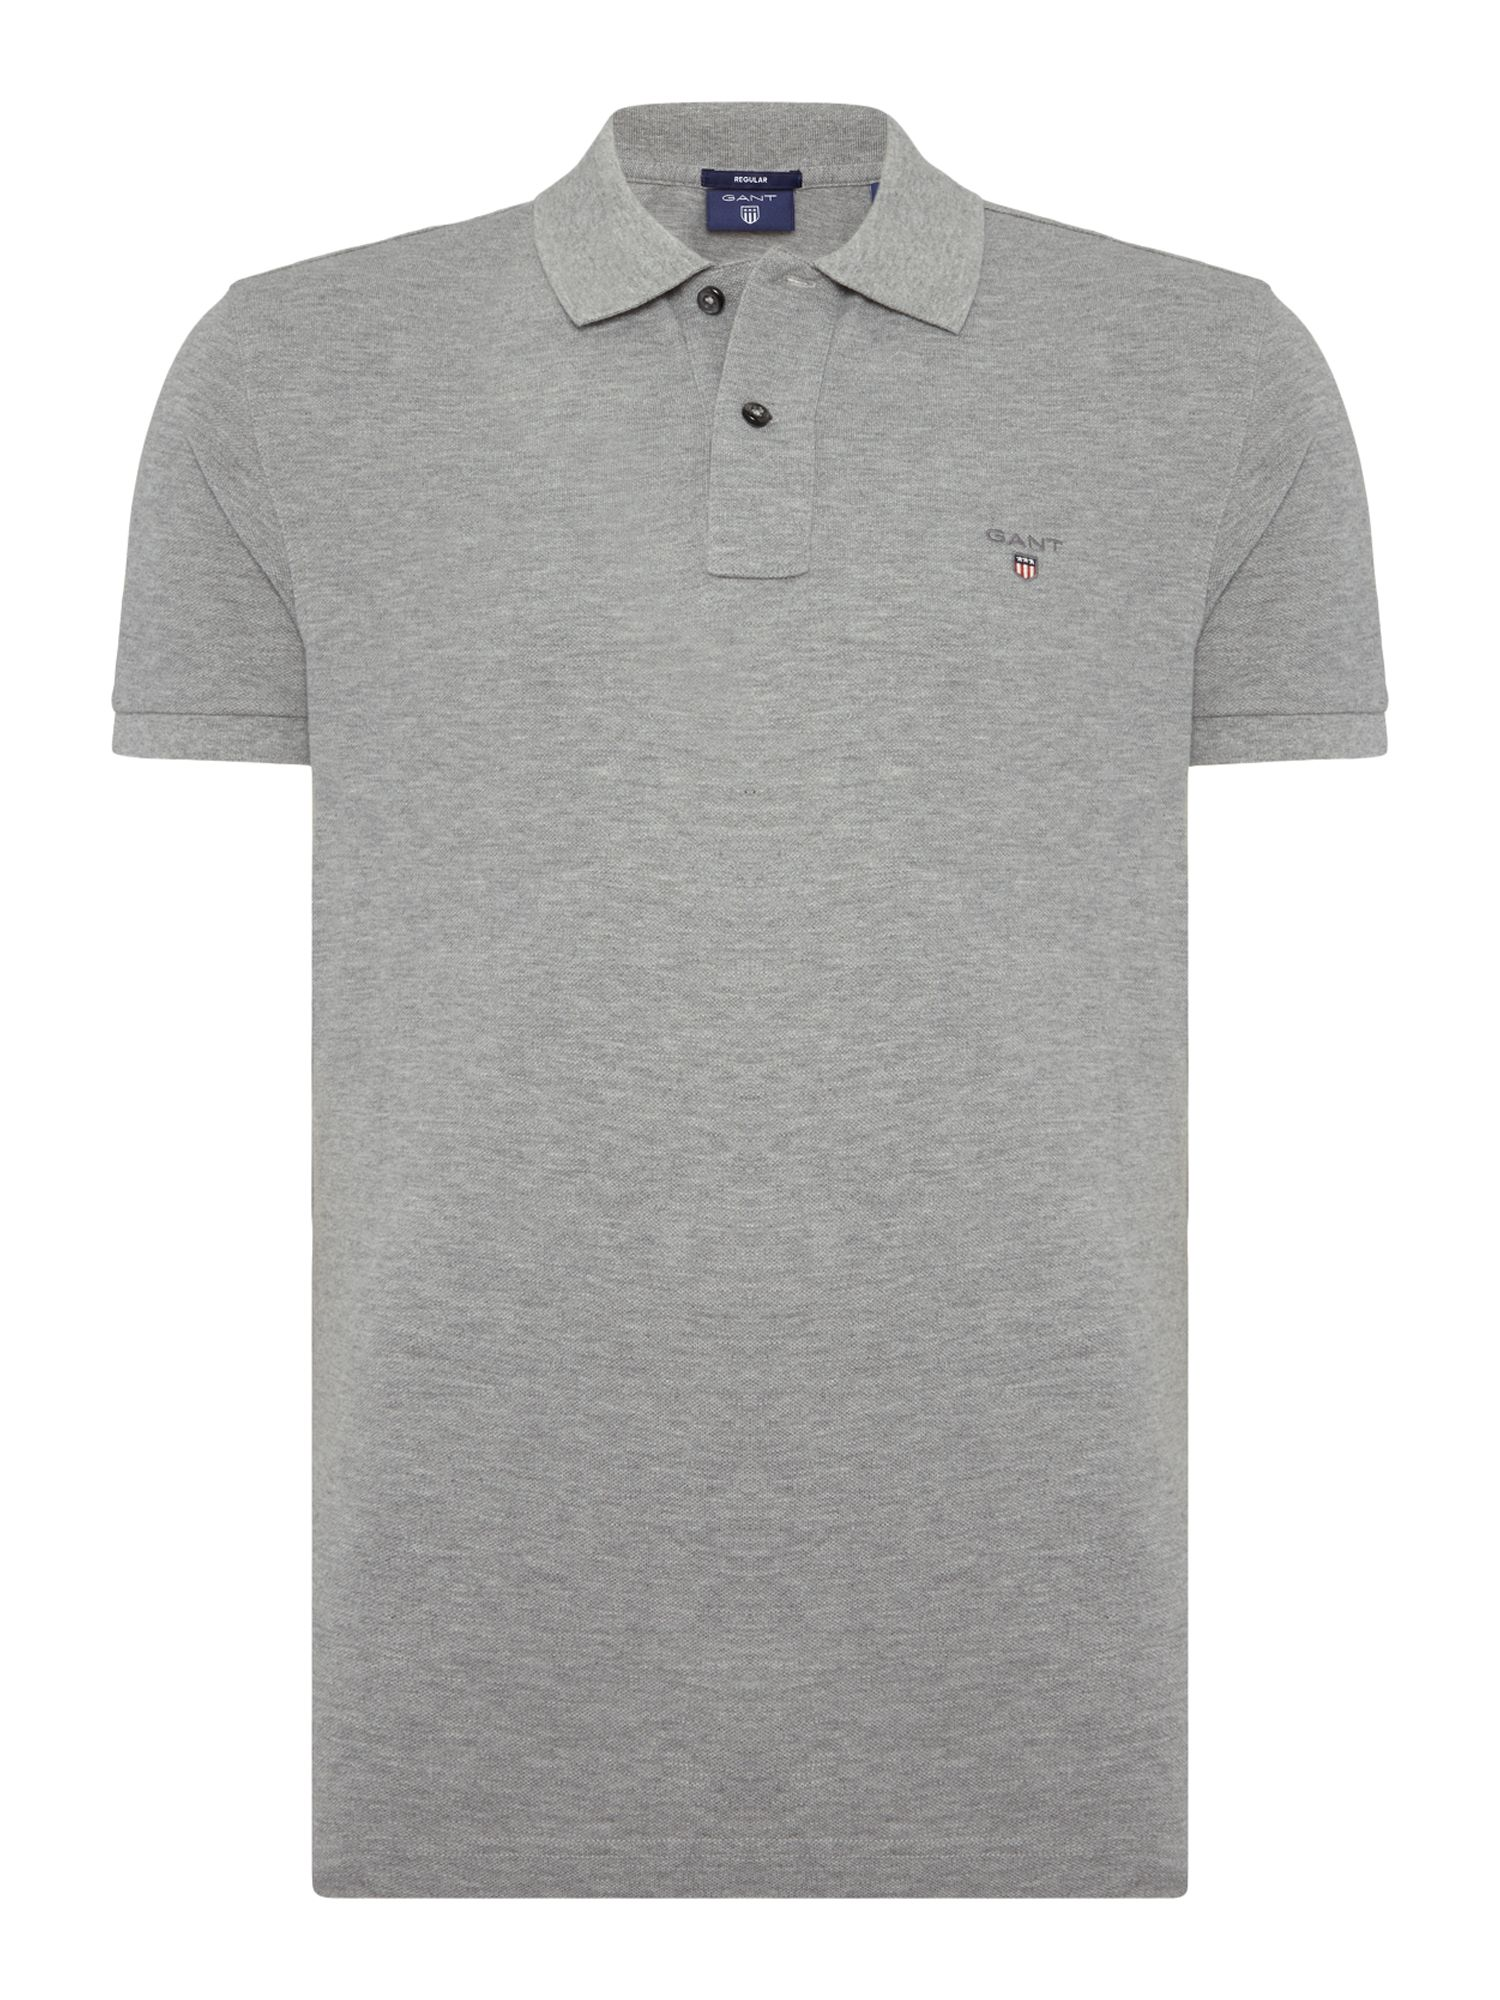 Men's Gant Original Pique Short Sleeve Polo, Grey Marl